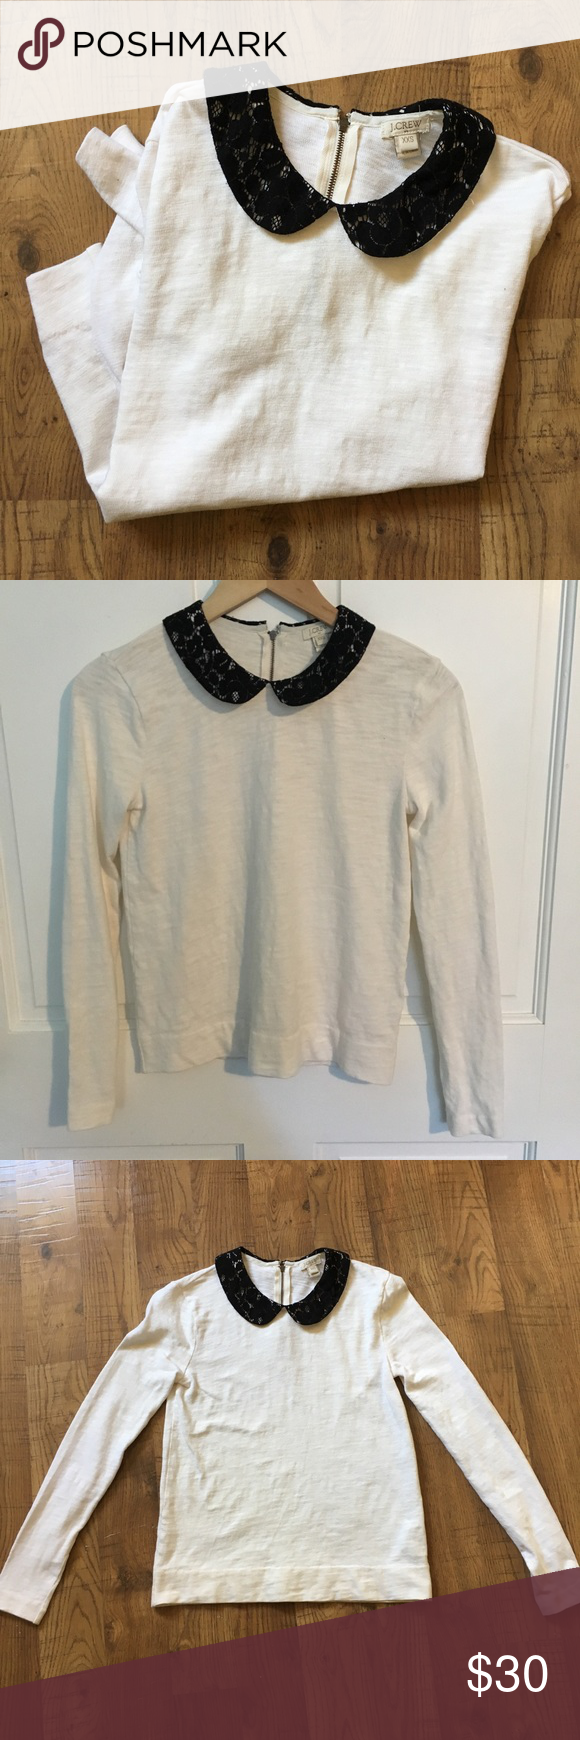 a44321b16ce J.Crew Factory Lace Collar Tee 🎉 Host Pick 🎉 Lace Peter Pan Collar Long  Sleeve Tee. 100% cotton Good used condition with some pilling on Collar, ...